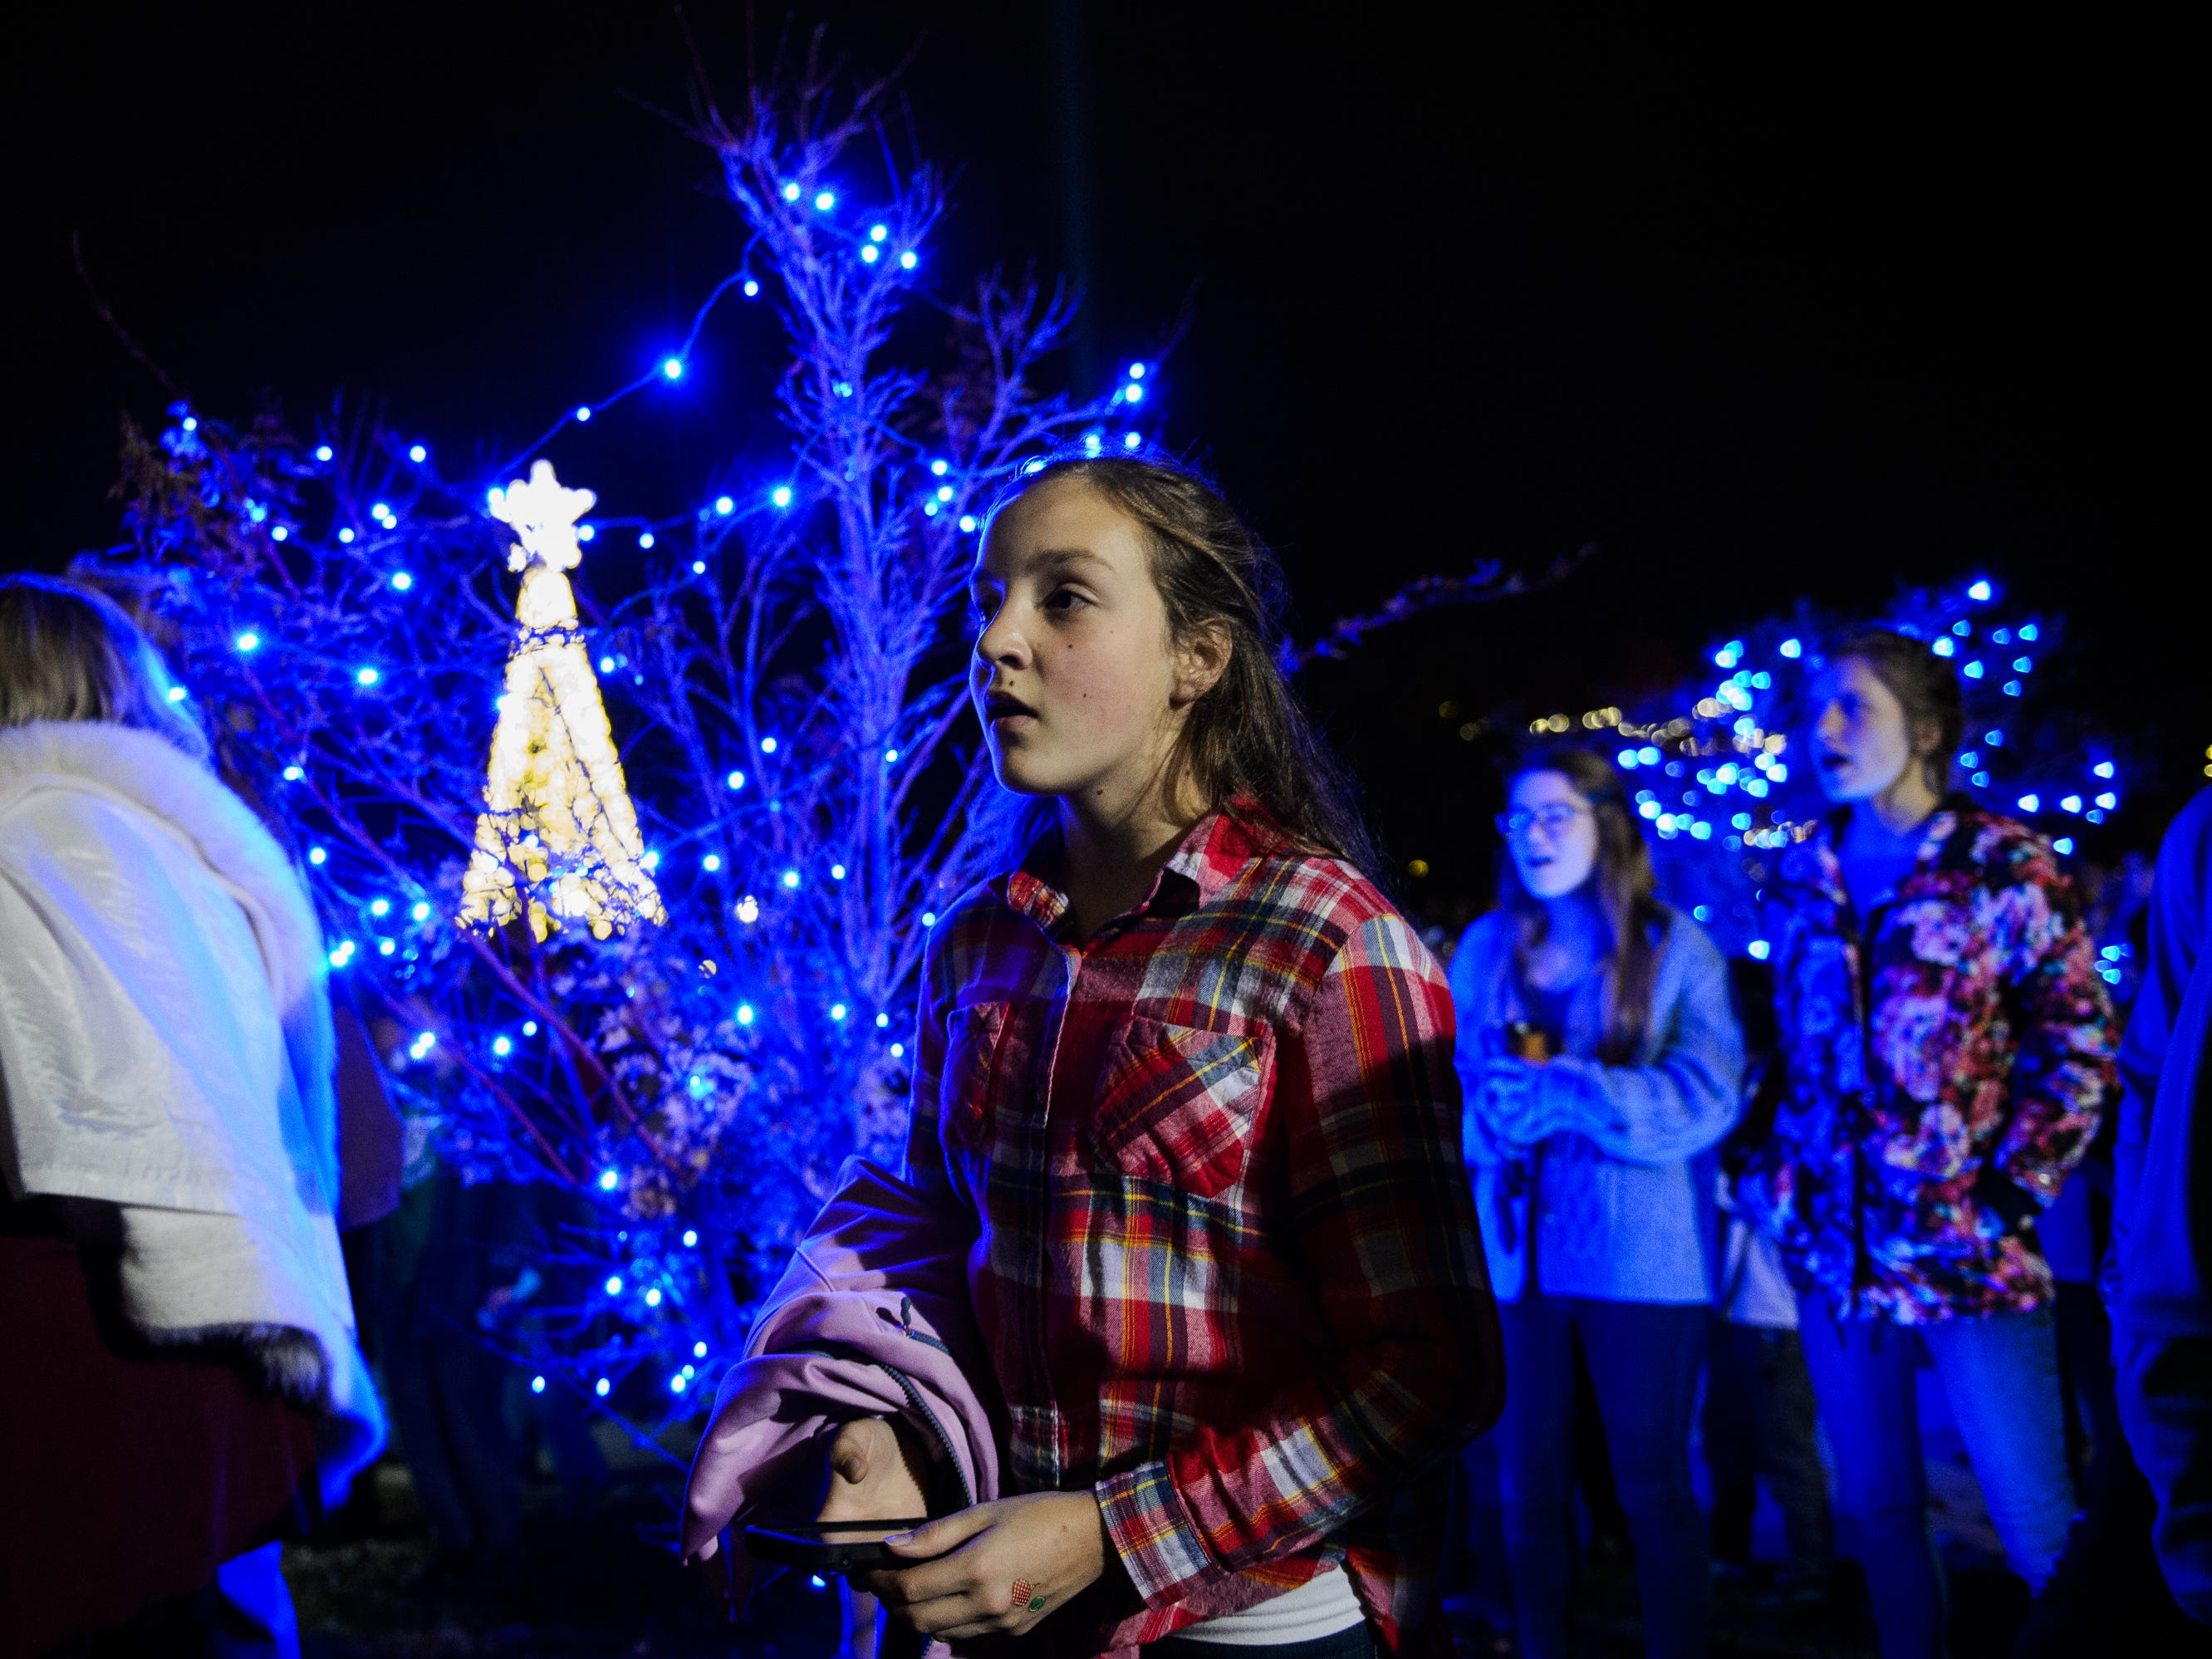 Rebekah Cutliff sings along with the choir during Bob Jones University's annual Christmas Celebration on Friday, Nov. 30, 2018.